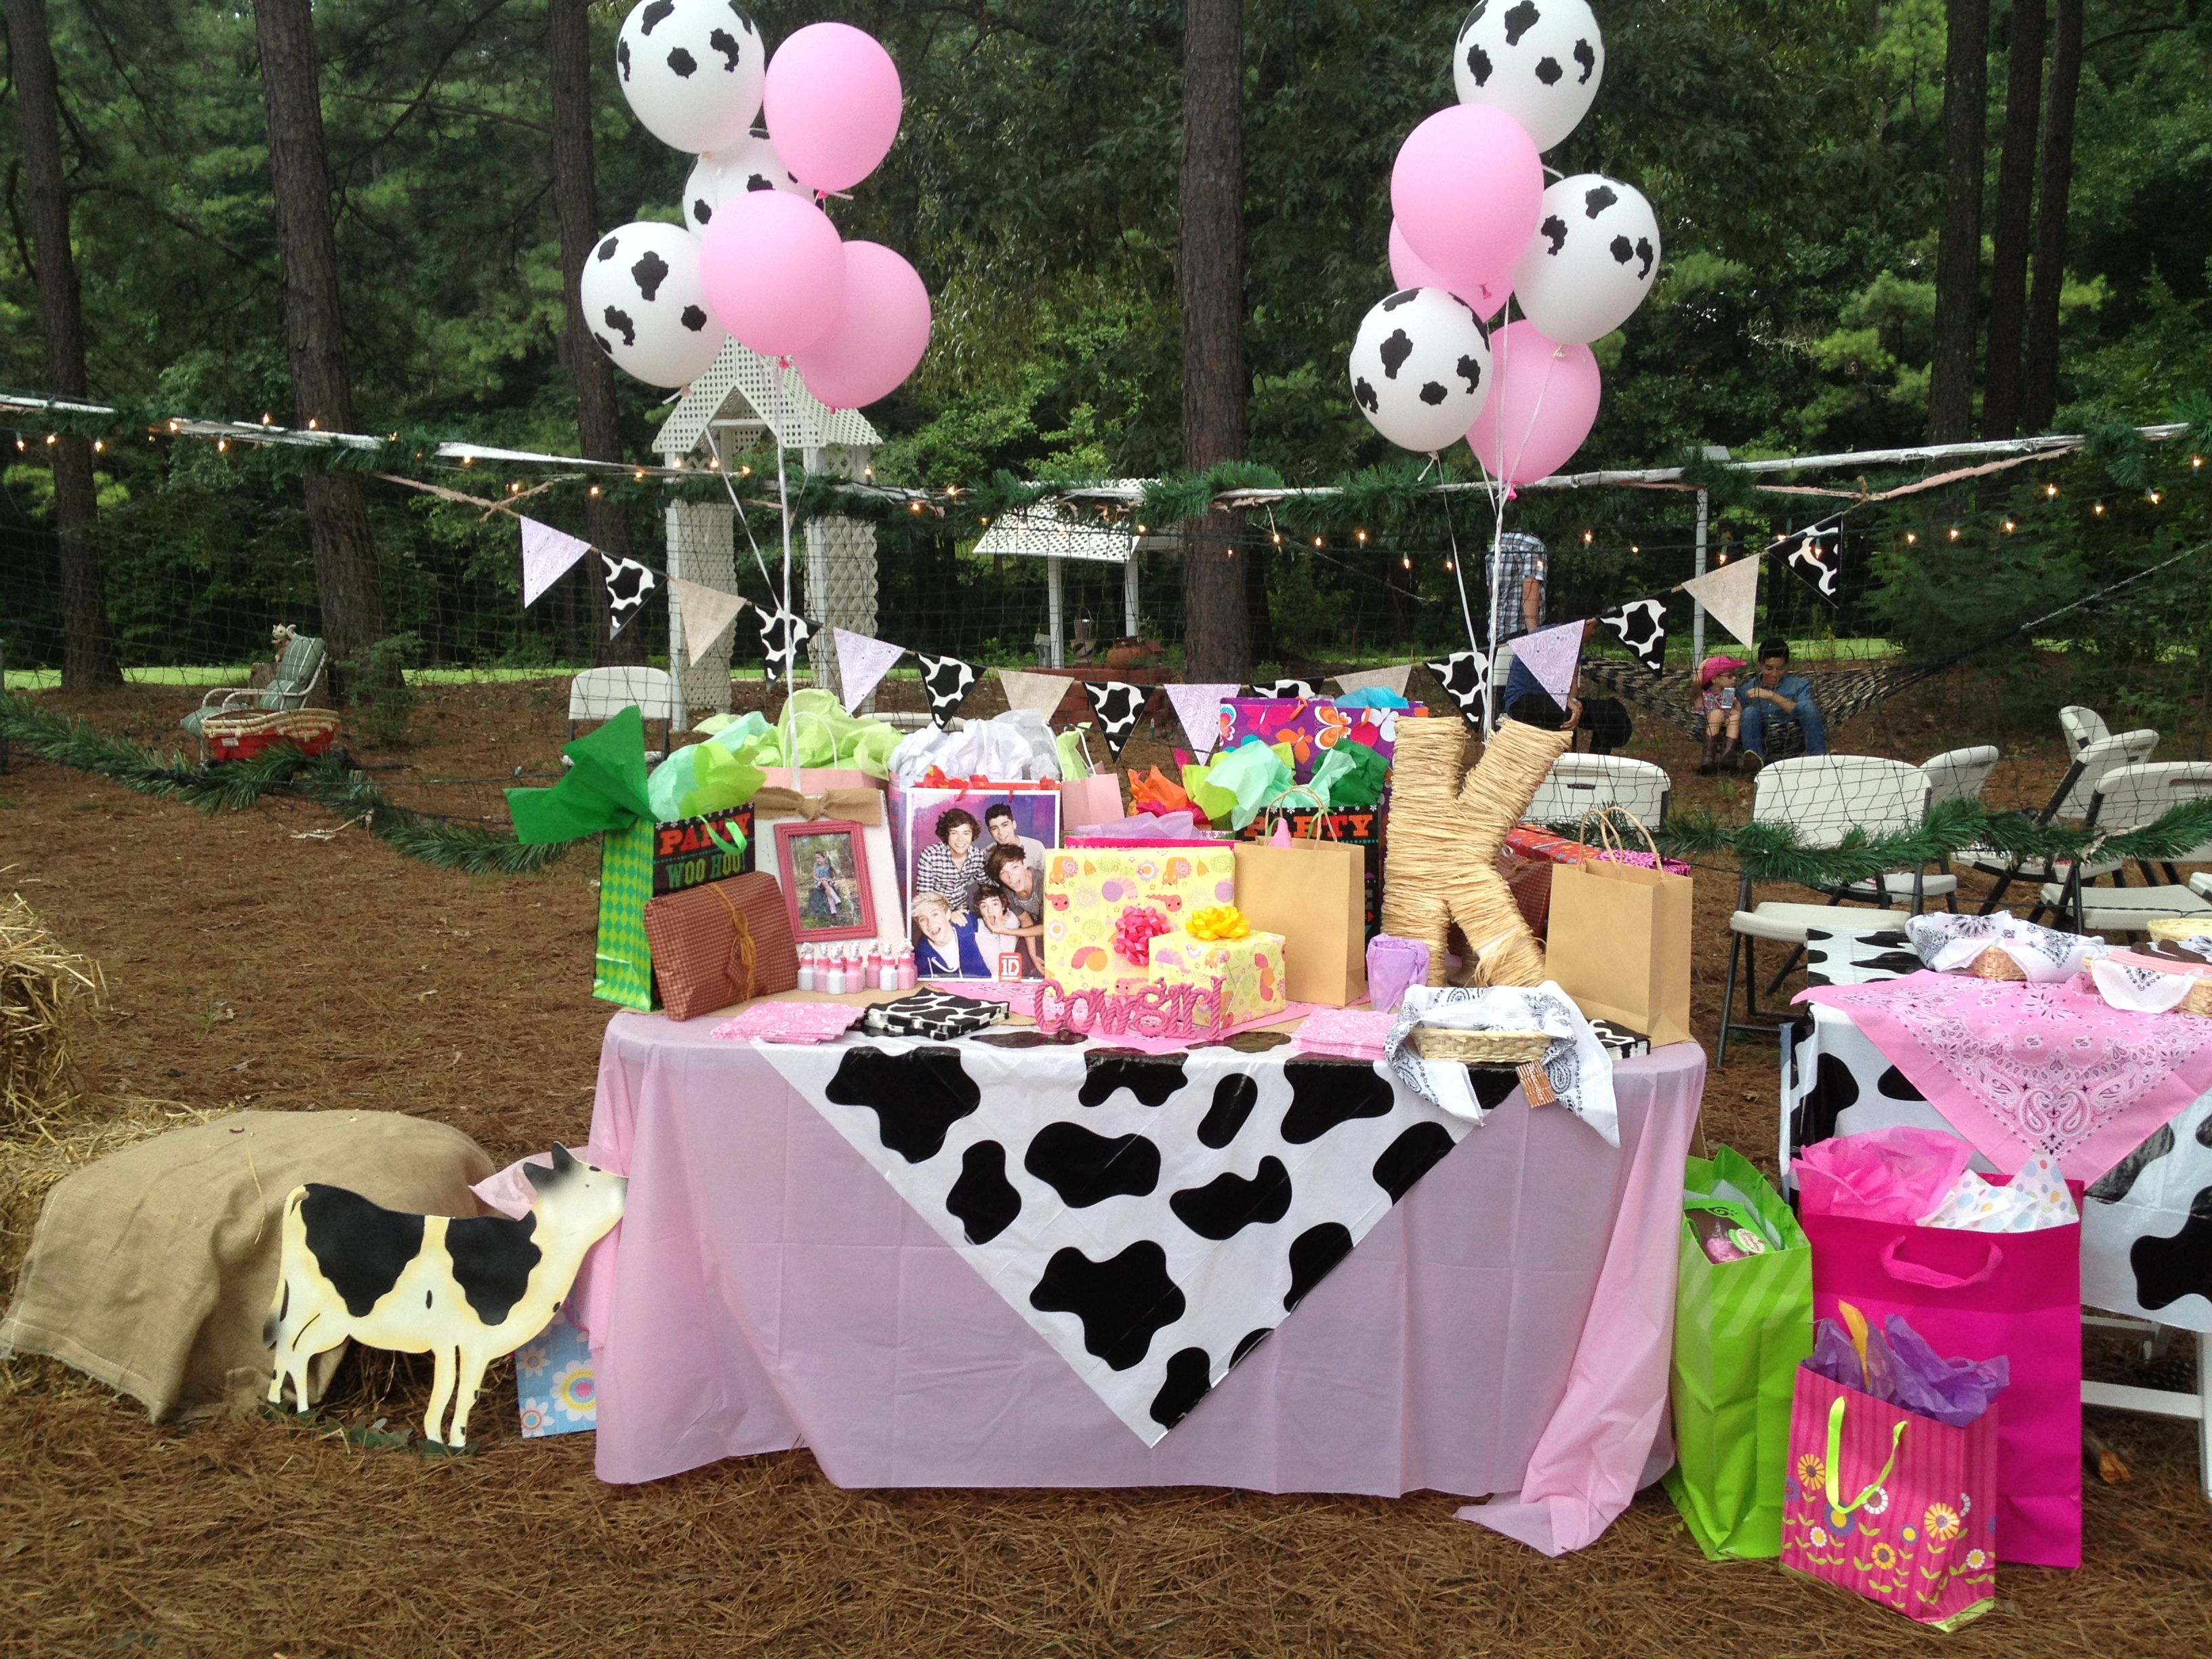 Cowgirl Party Decorations And Centerpieces The Balloons Tablecloths Napkins Pink Sign Are From Hobby Lobby